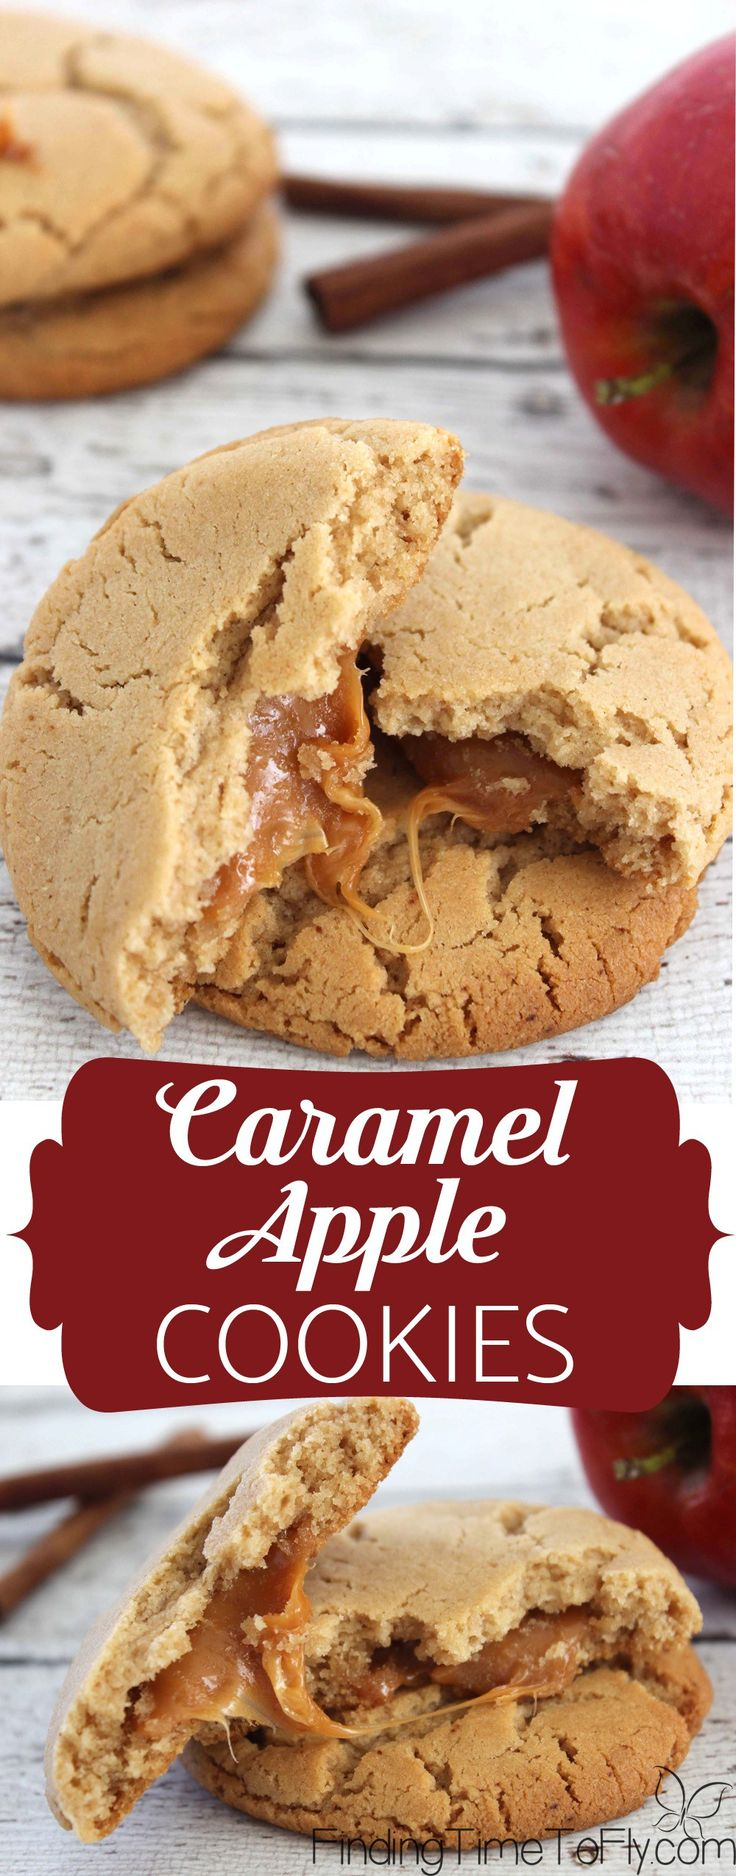 These Caramel Apple Cookies look so good! Perfect dessert for fall.